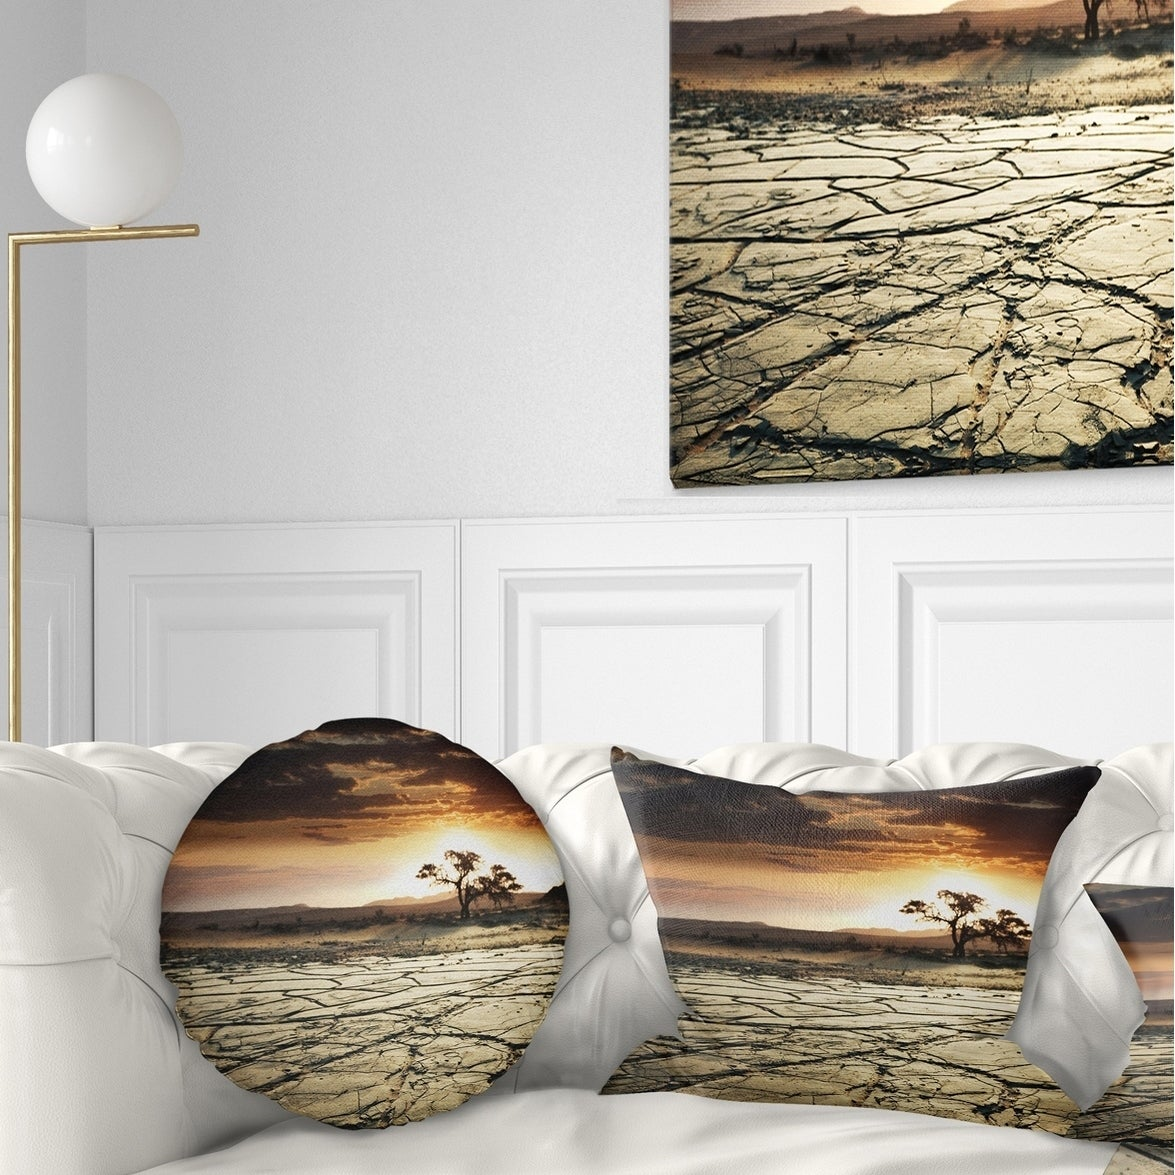 Designart Desert Gopi Cracked Drought Land African Landscape Printed Throw Pillow On Sale Overstock 20950136